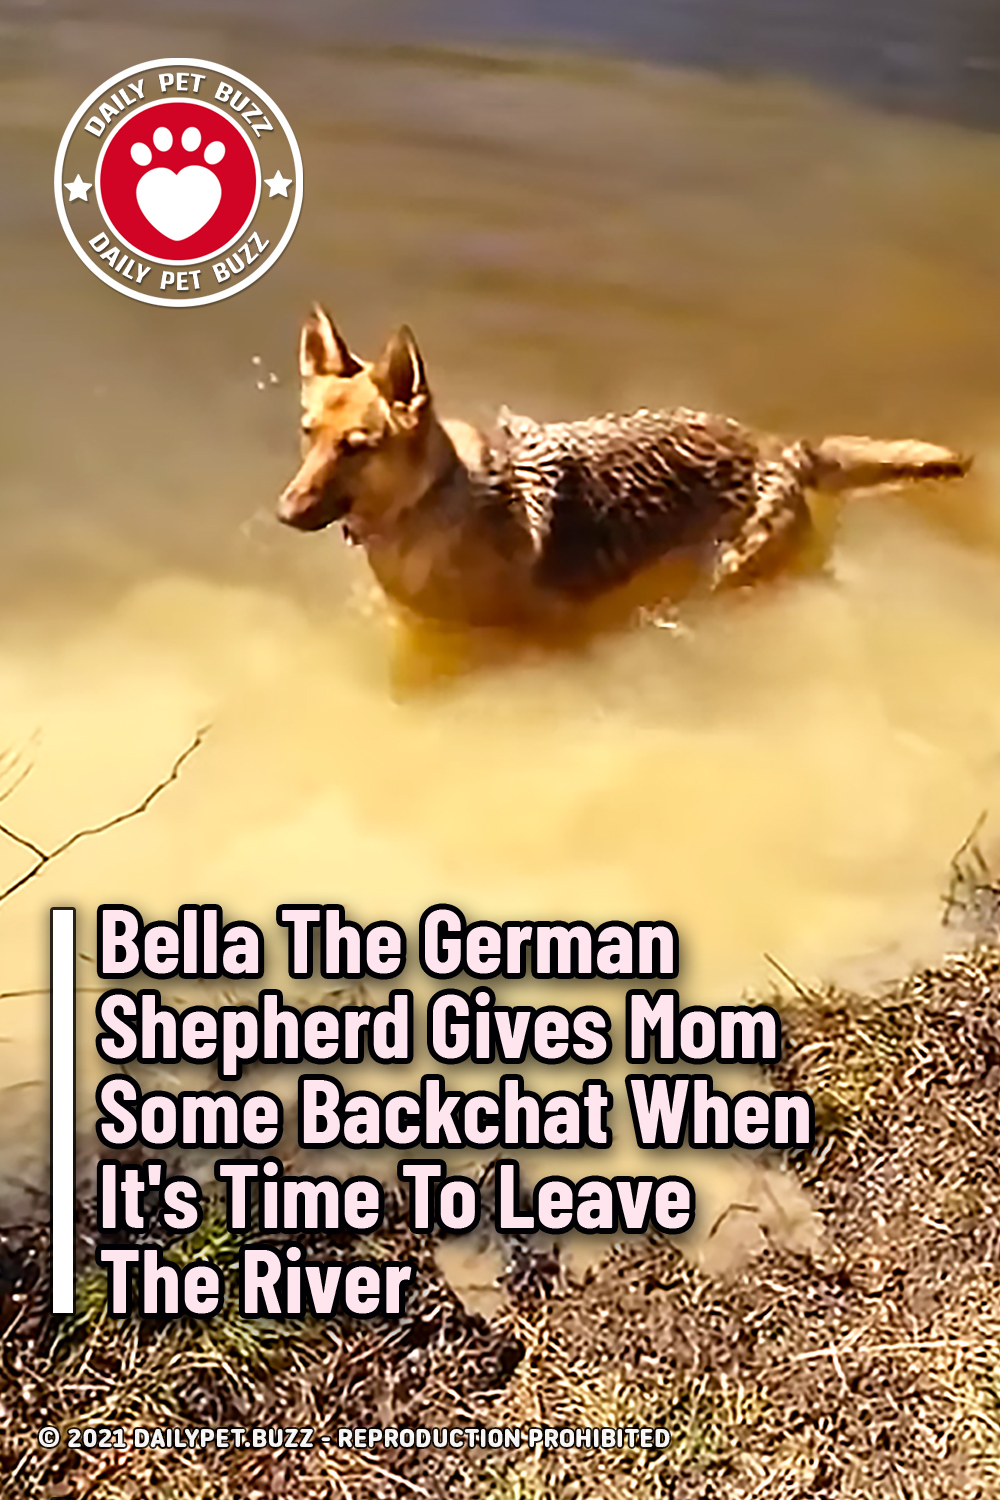 Bella The German Shepherd Gives Mom Some Backchat When It\'s Time To Leave The River